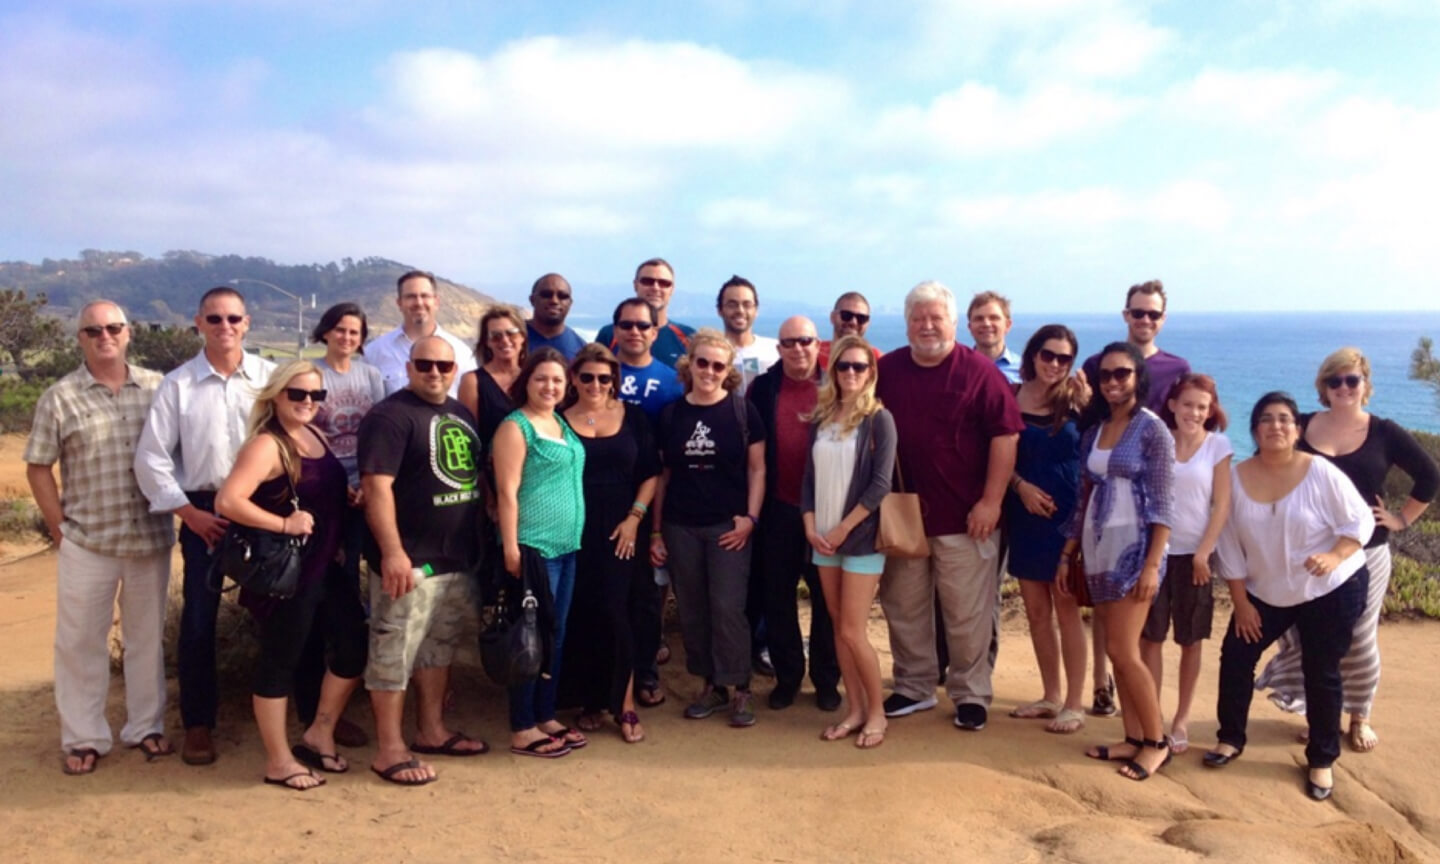 PIRCH Team Members Enjoying San Diego (4 of 5)